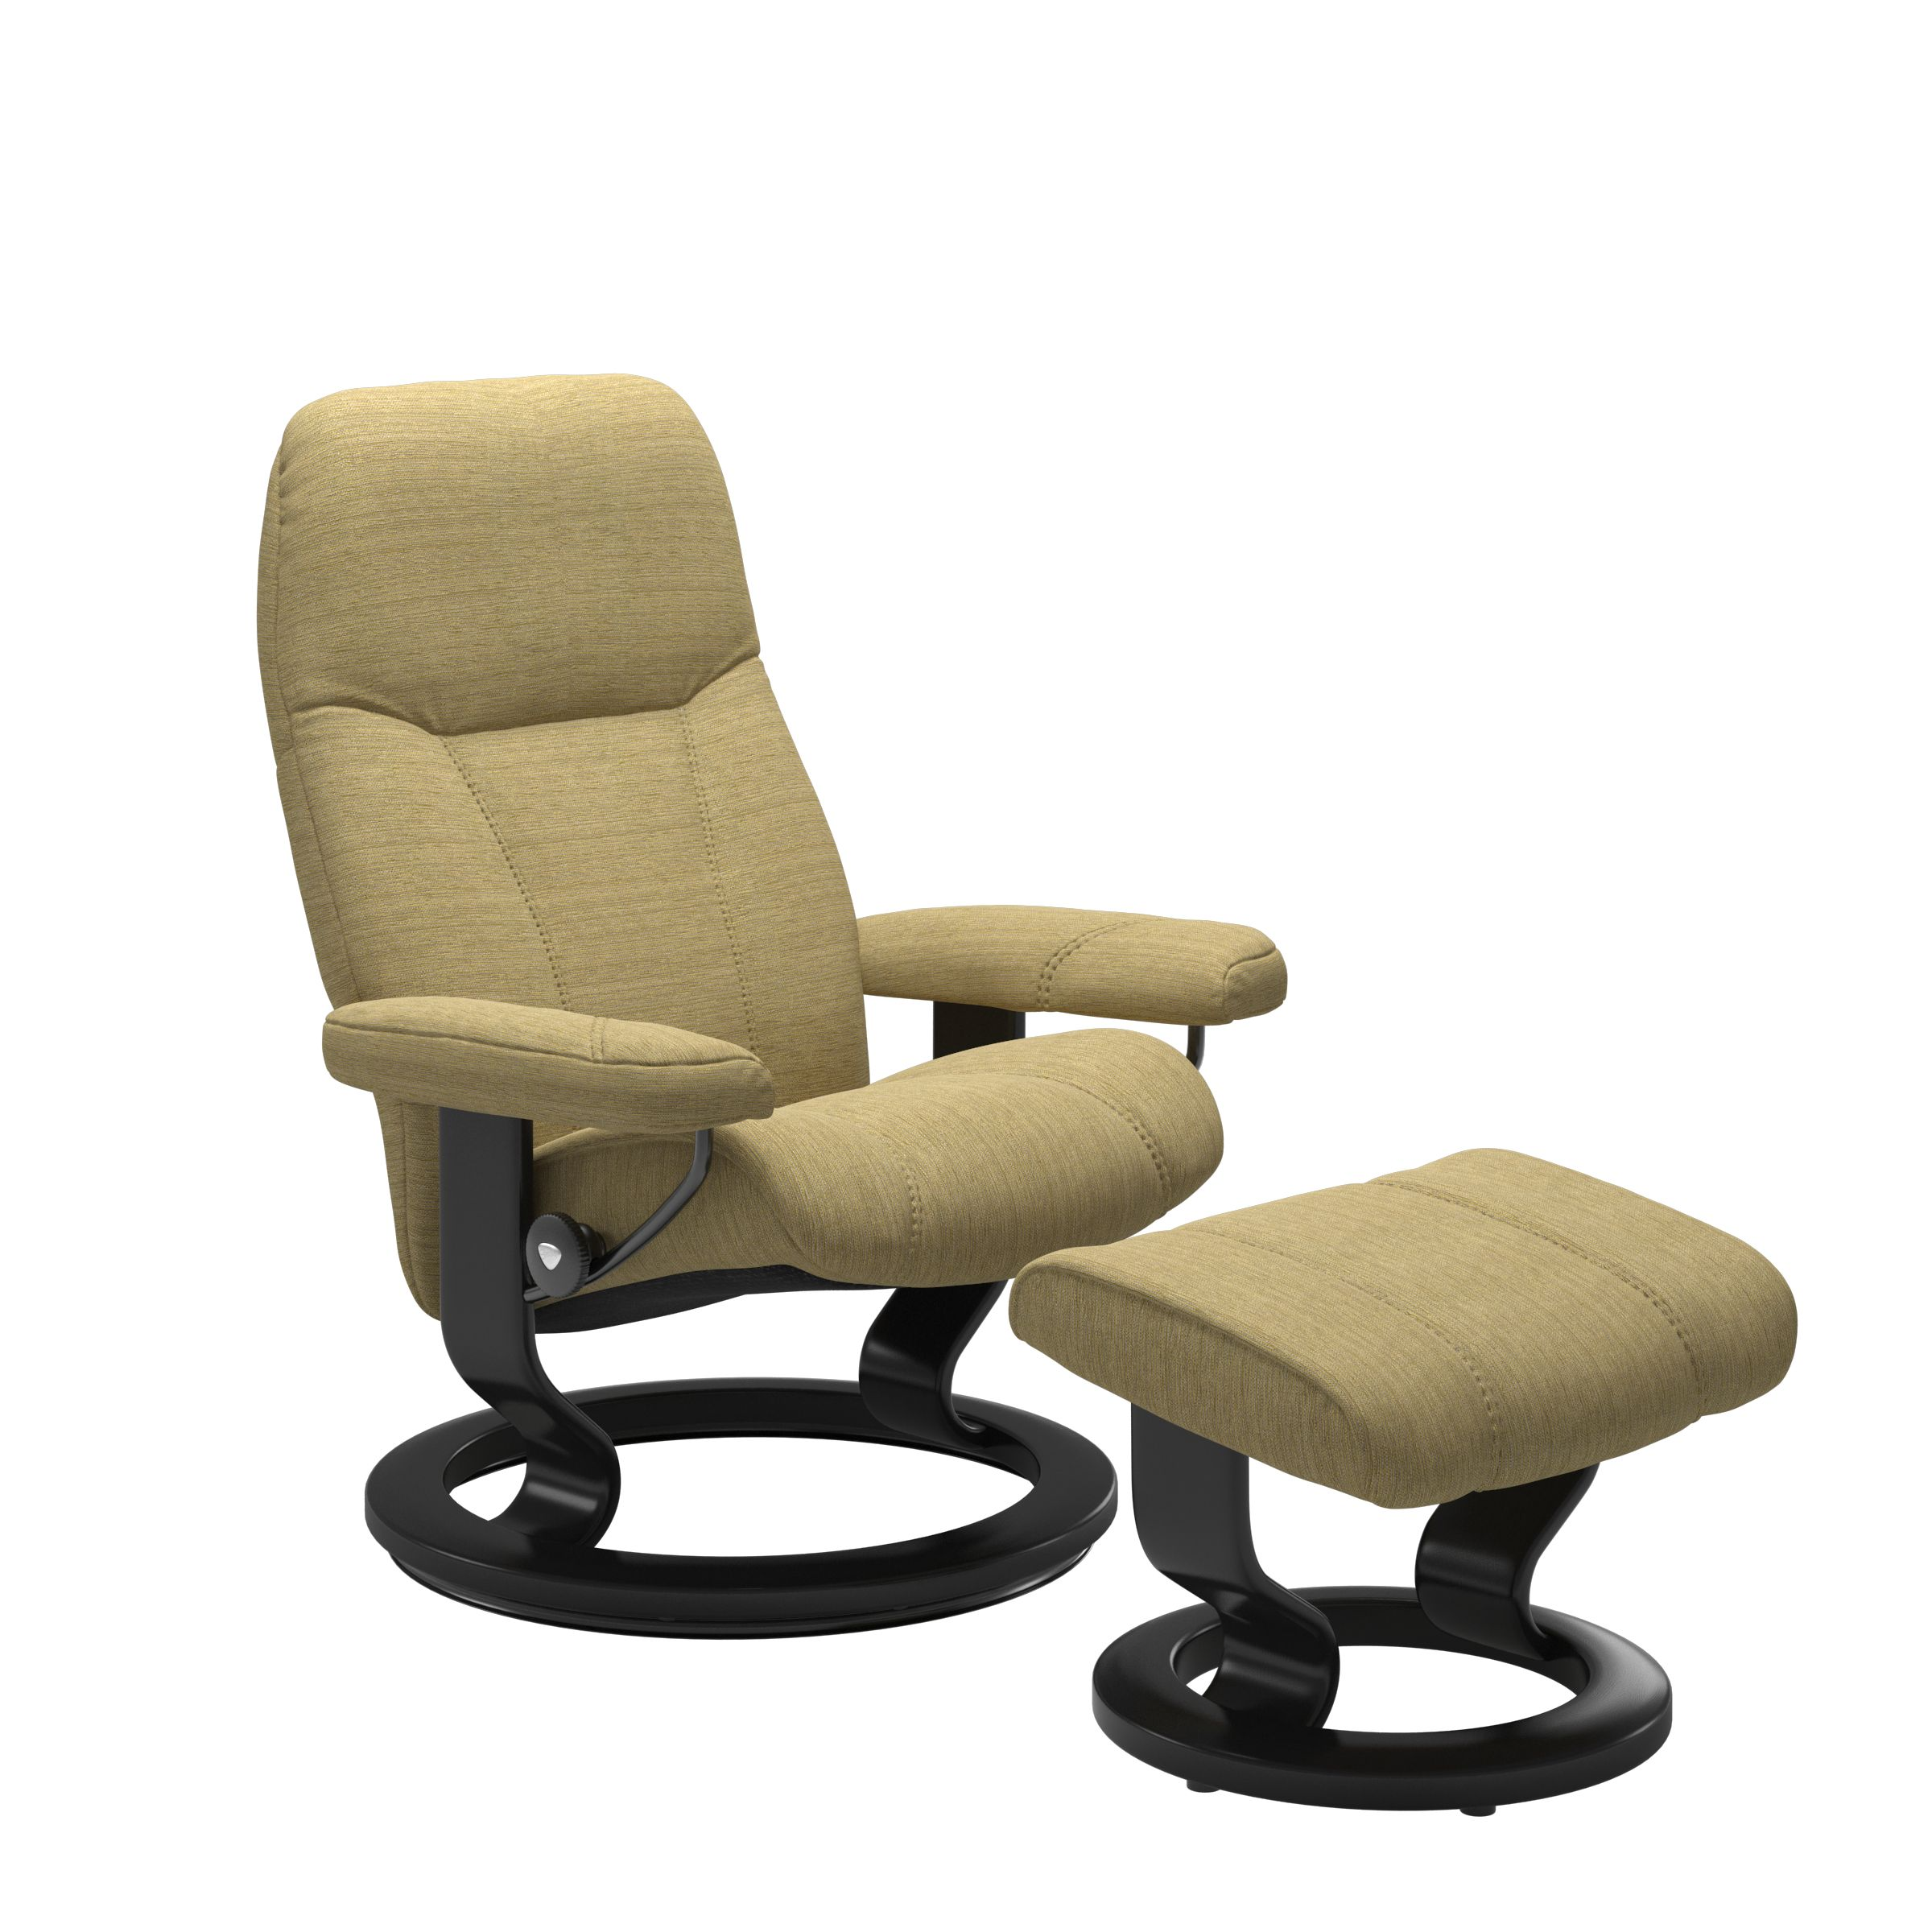 Stressless Nordic Legcomfort Stressless Consul Customizable Recliner Stressless